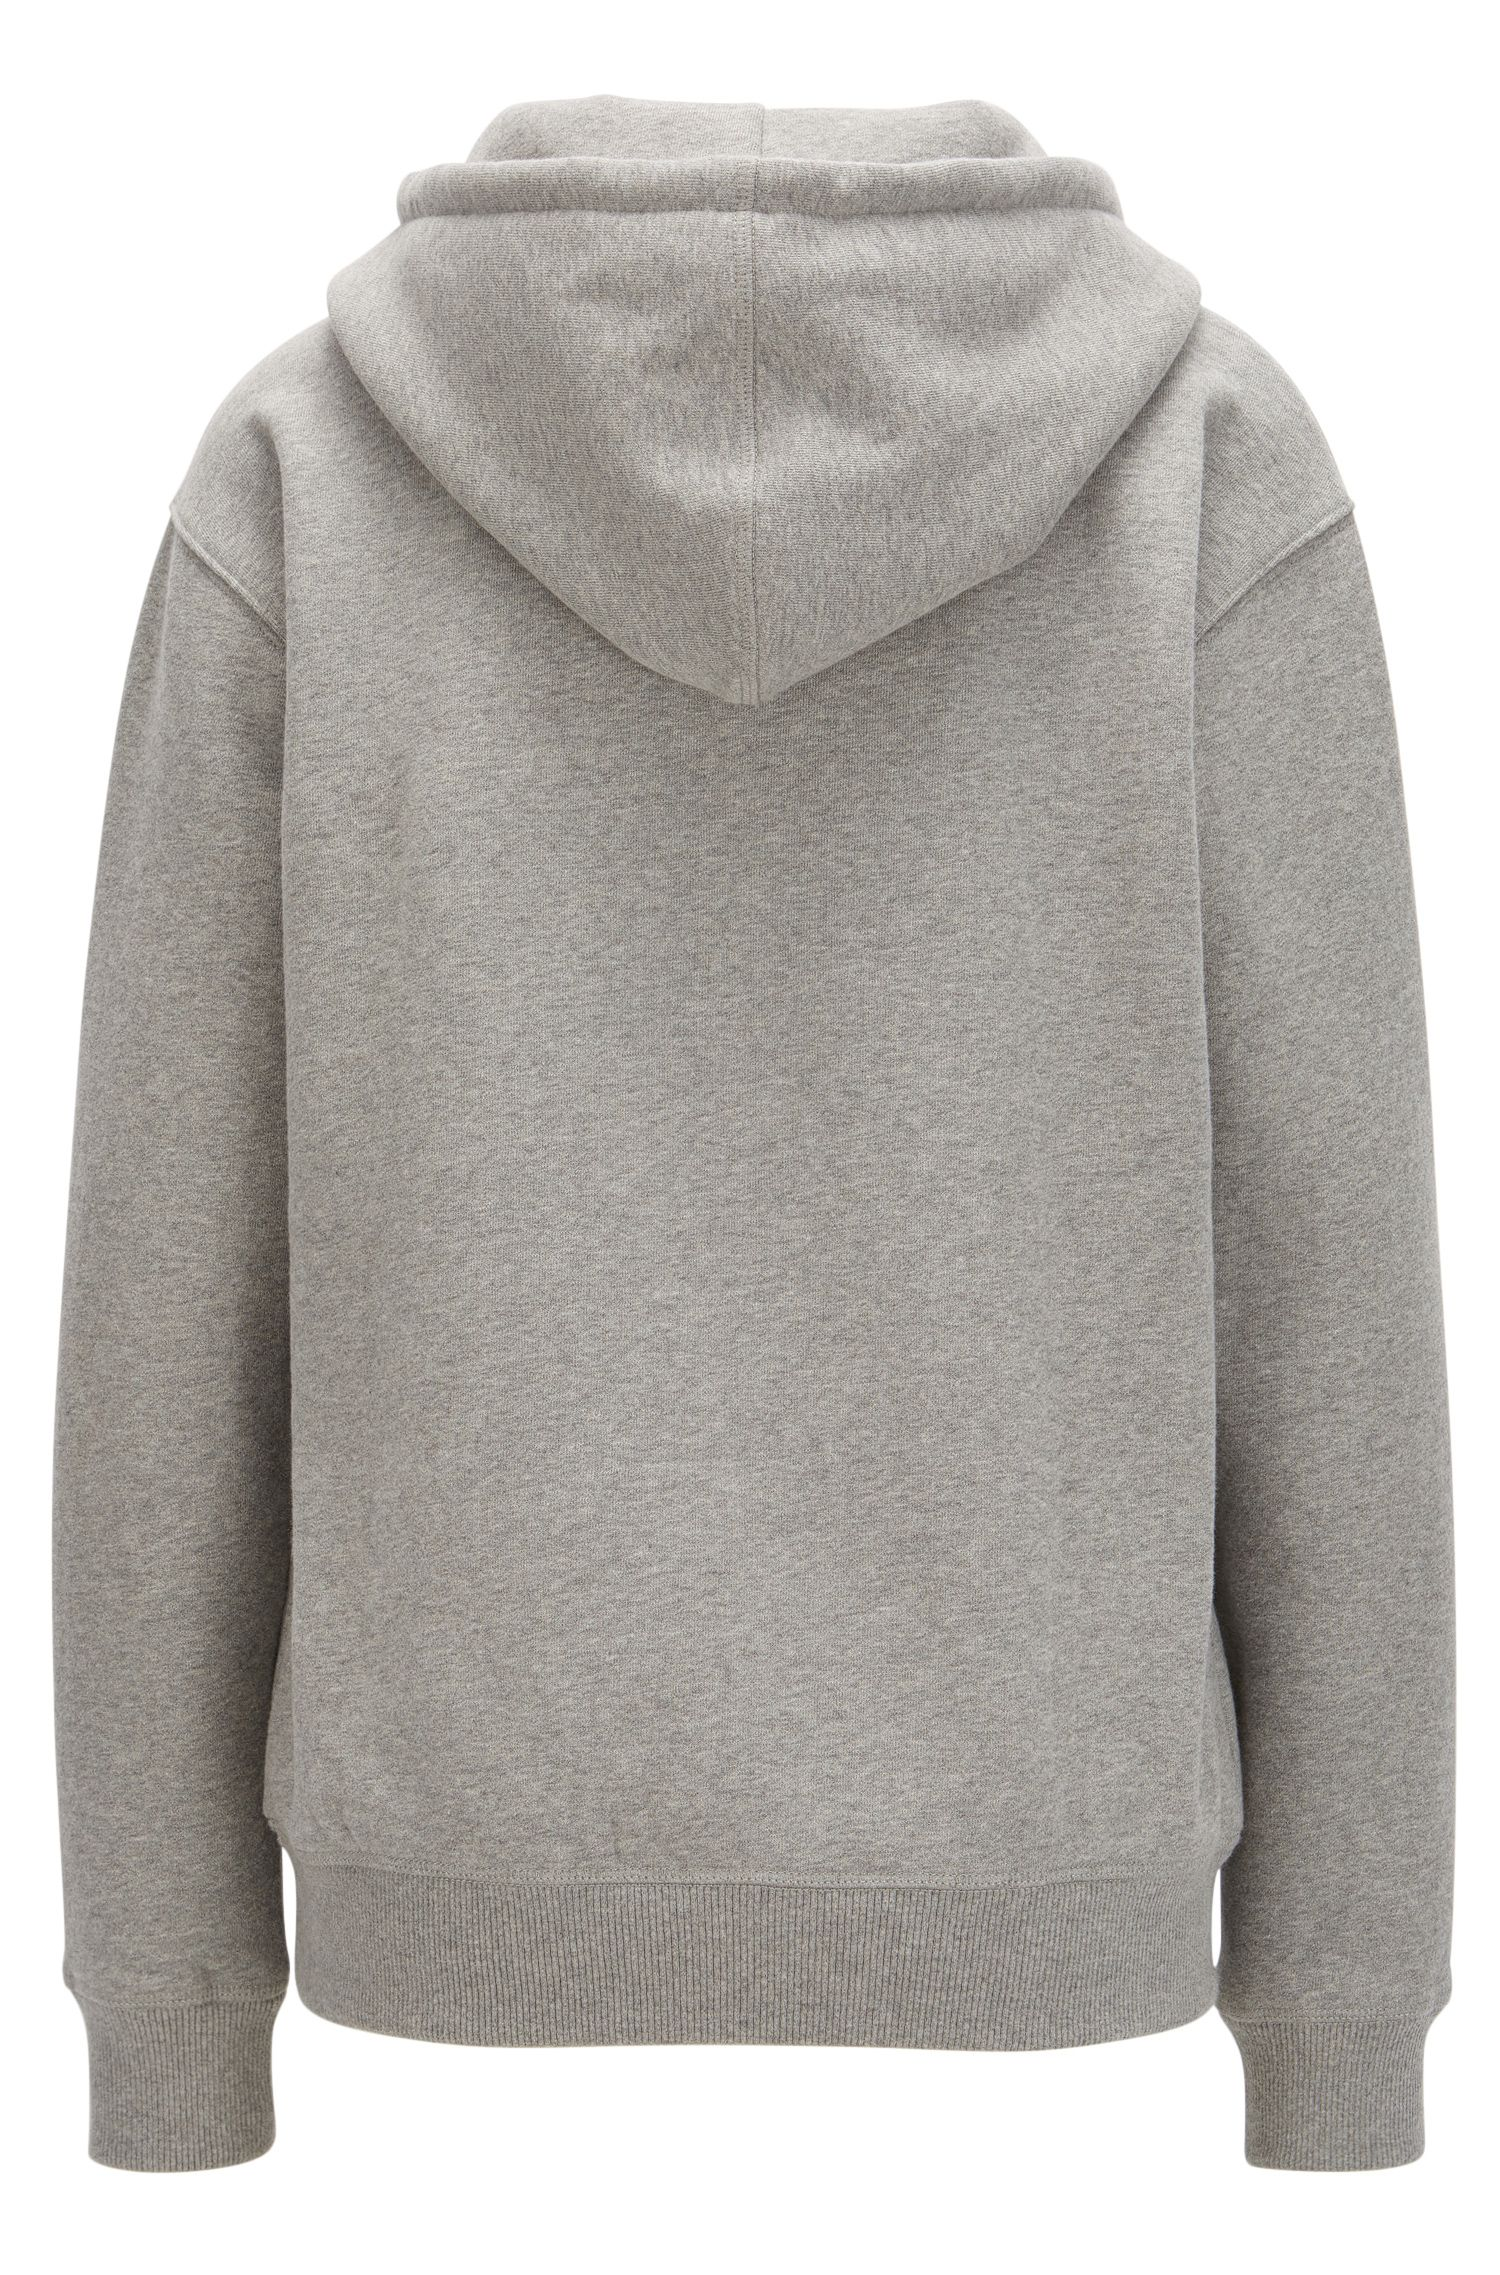 Hooded sweater in a cotton blend